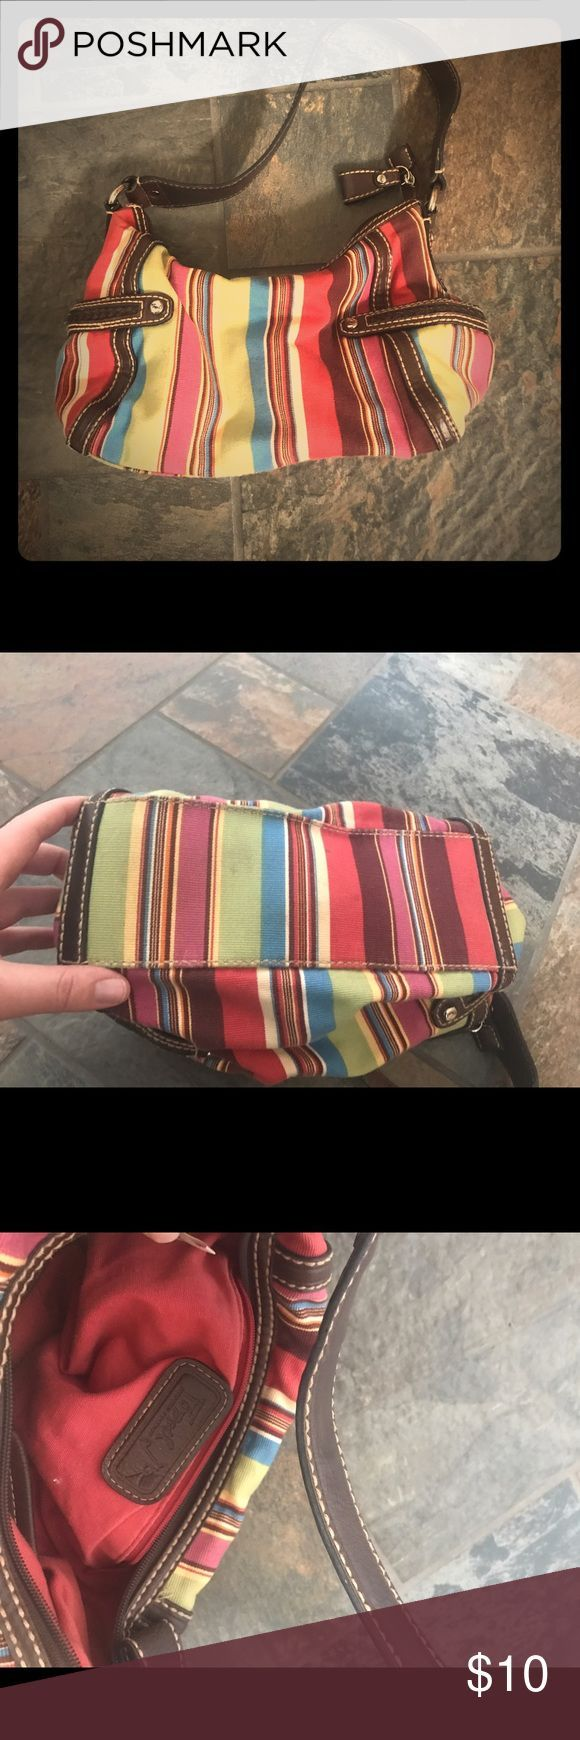 Fossil hand bag Cute stripped Fossil hand bag. Used a couple times but don't have much use for it anymore.  Fossil Bags Mini Bags - branded purse for ladies, handbag sale, handbags & purses *sponsored https://www.pinterest.com/purses_handbags/ https://www.pinterest.com/explore/handbag/ https://www.pinterest.com/purses_handbags/radley-handbags/ https://www.therealreal.com/shop/women/handbags